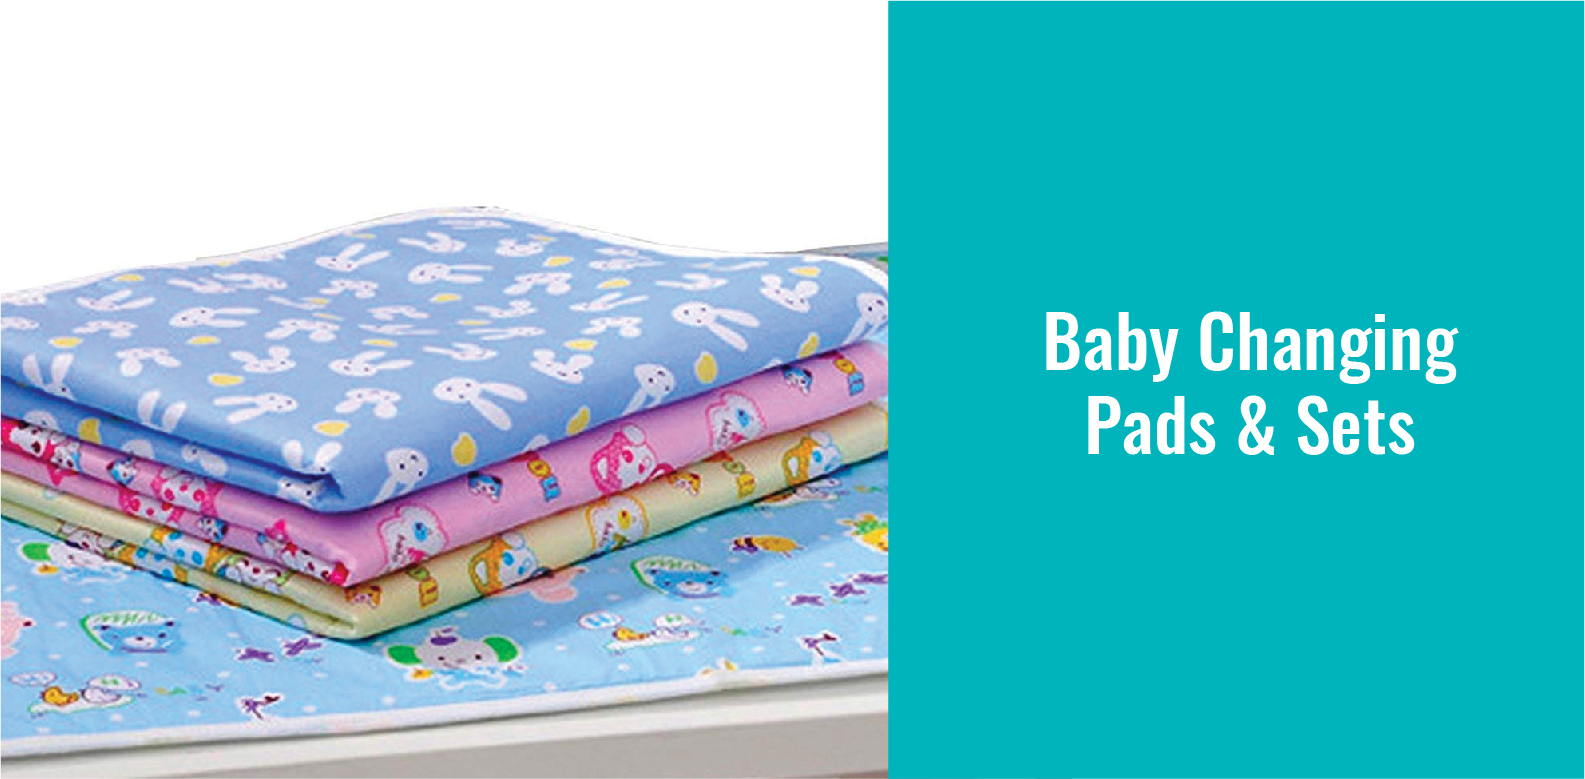 Baby Changing Pads & Sets